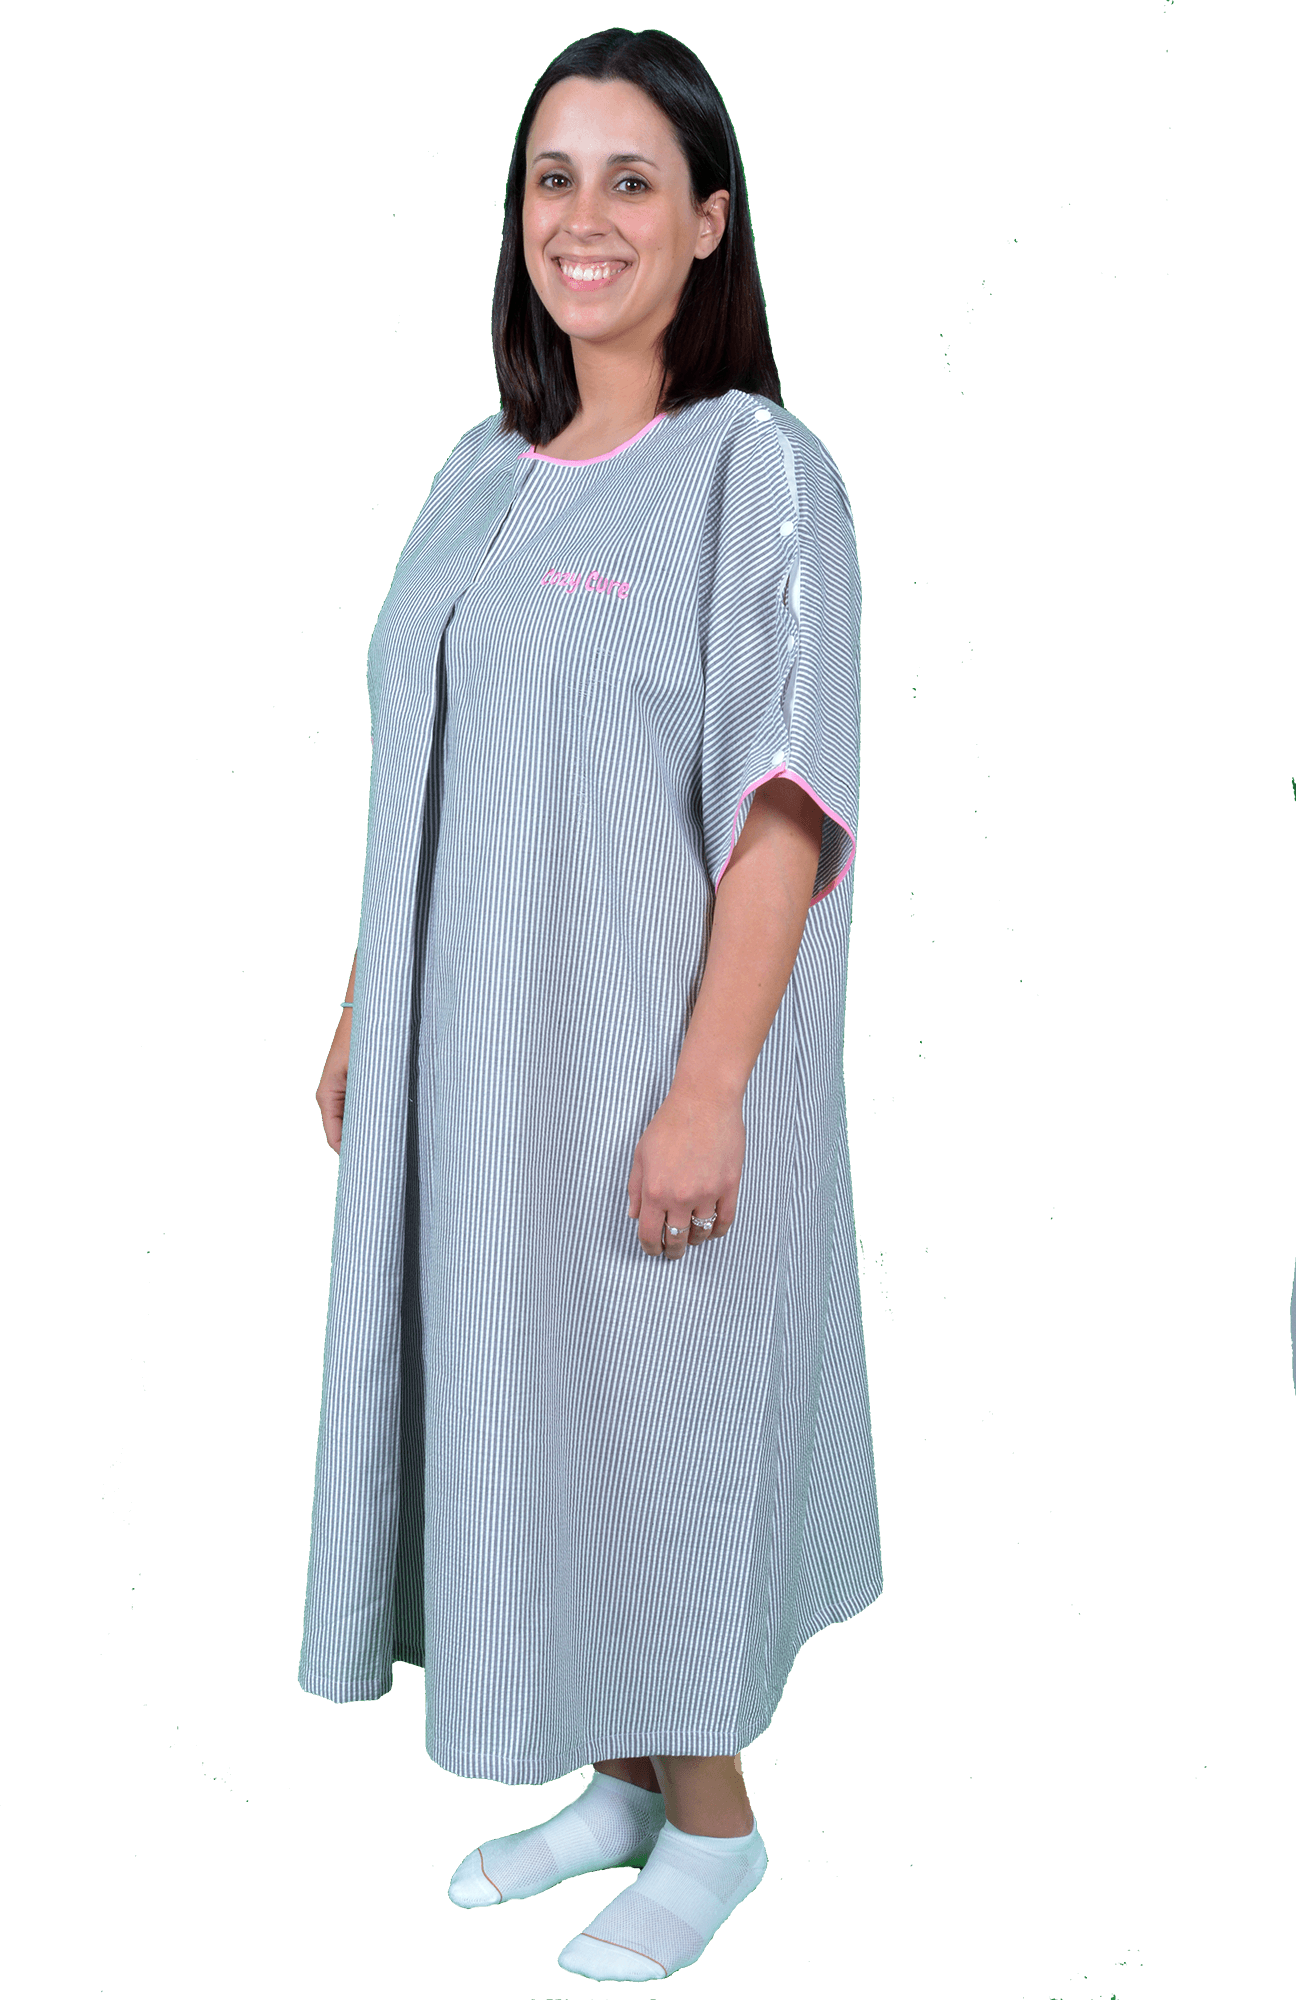 HOSPITAL GOWNS COZY CURE by Deelee